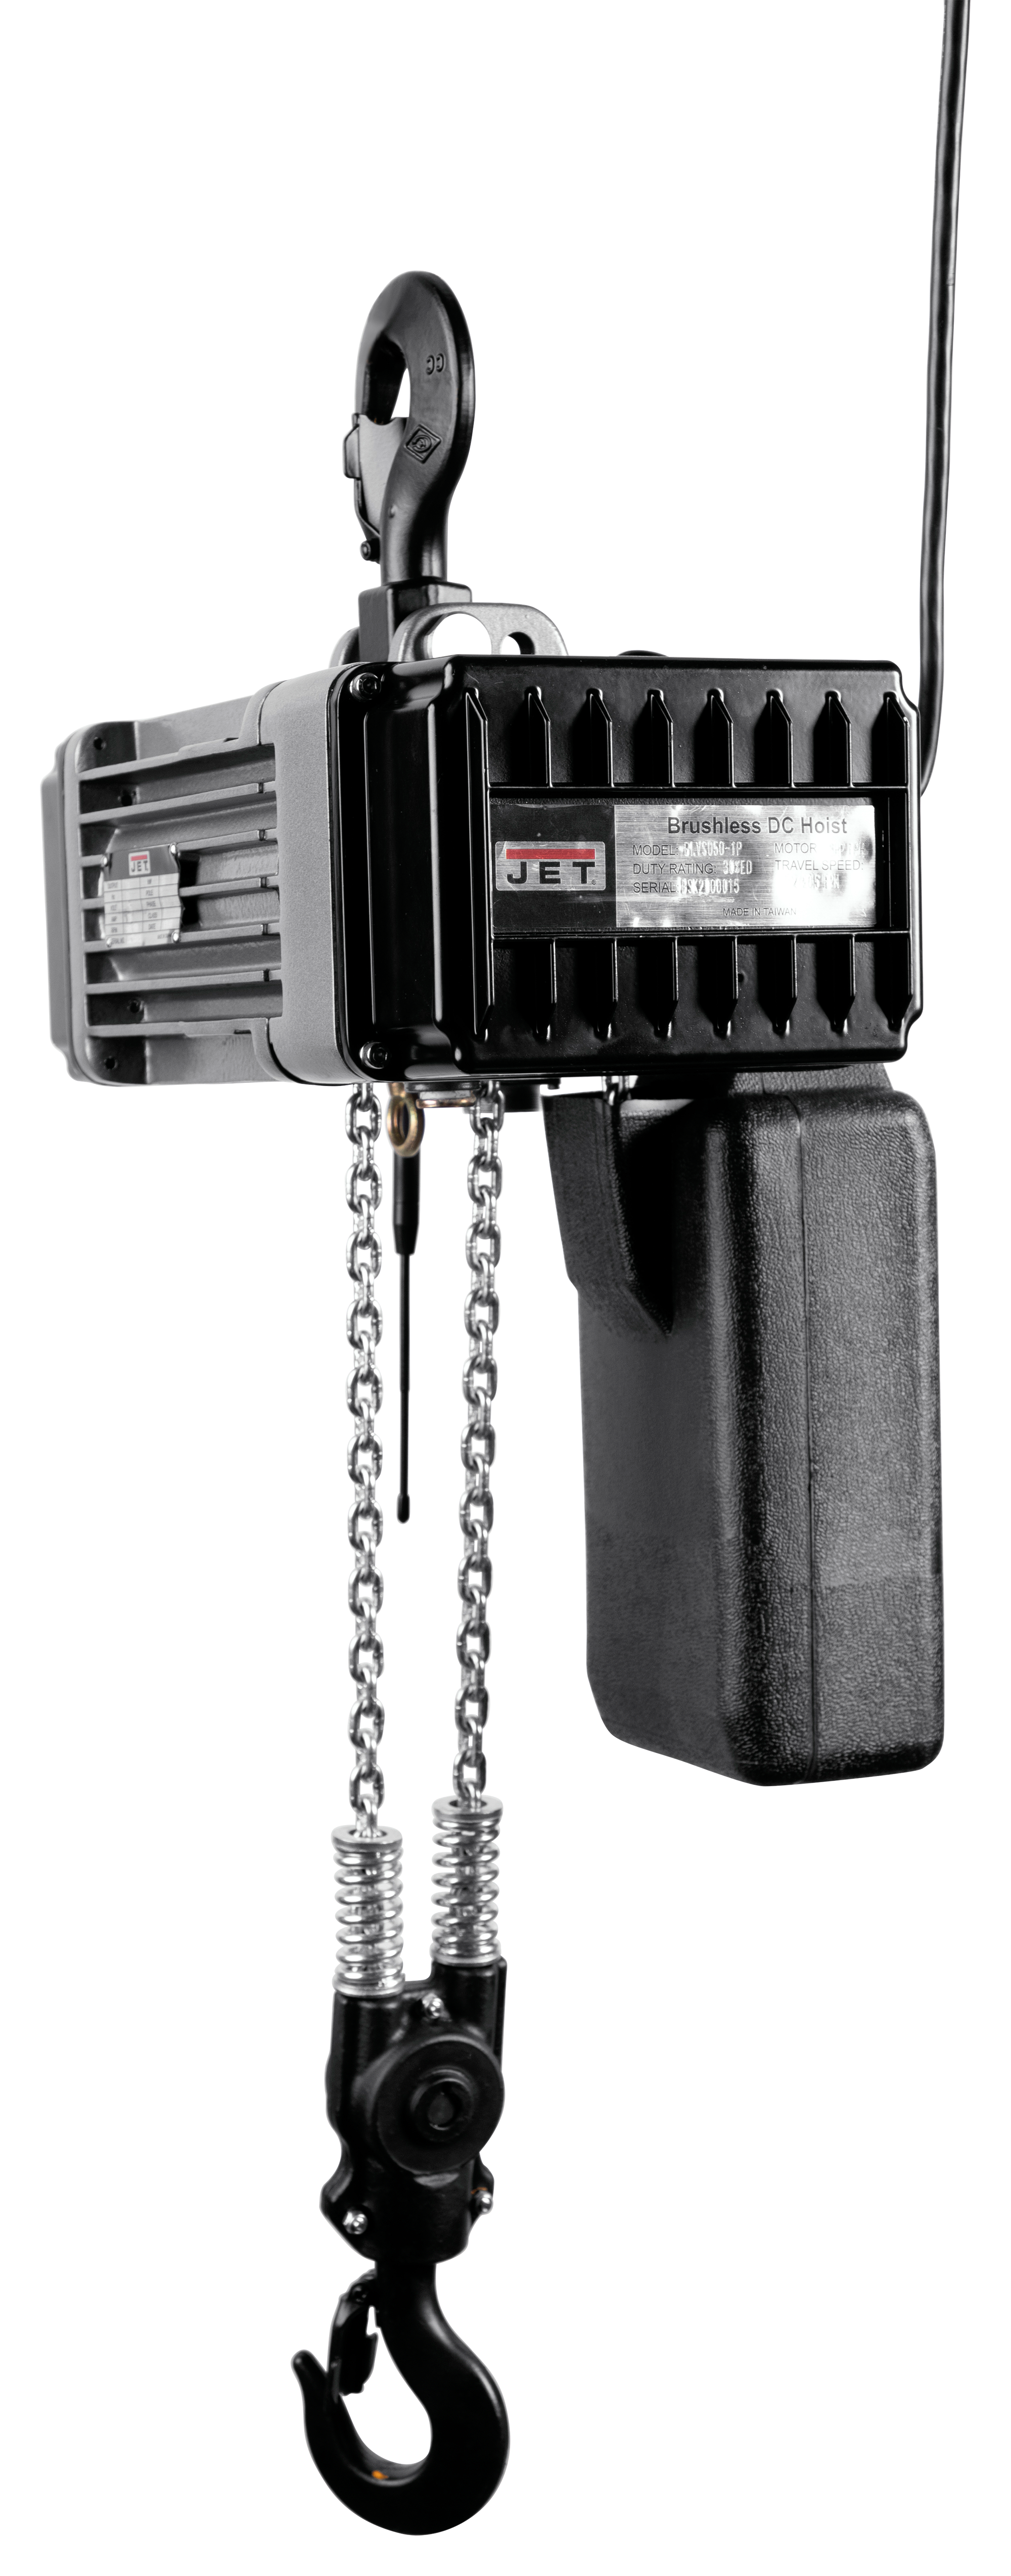 JET® Trademaster® Series electric hoists combines safety, portability, and durability to operate in